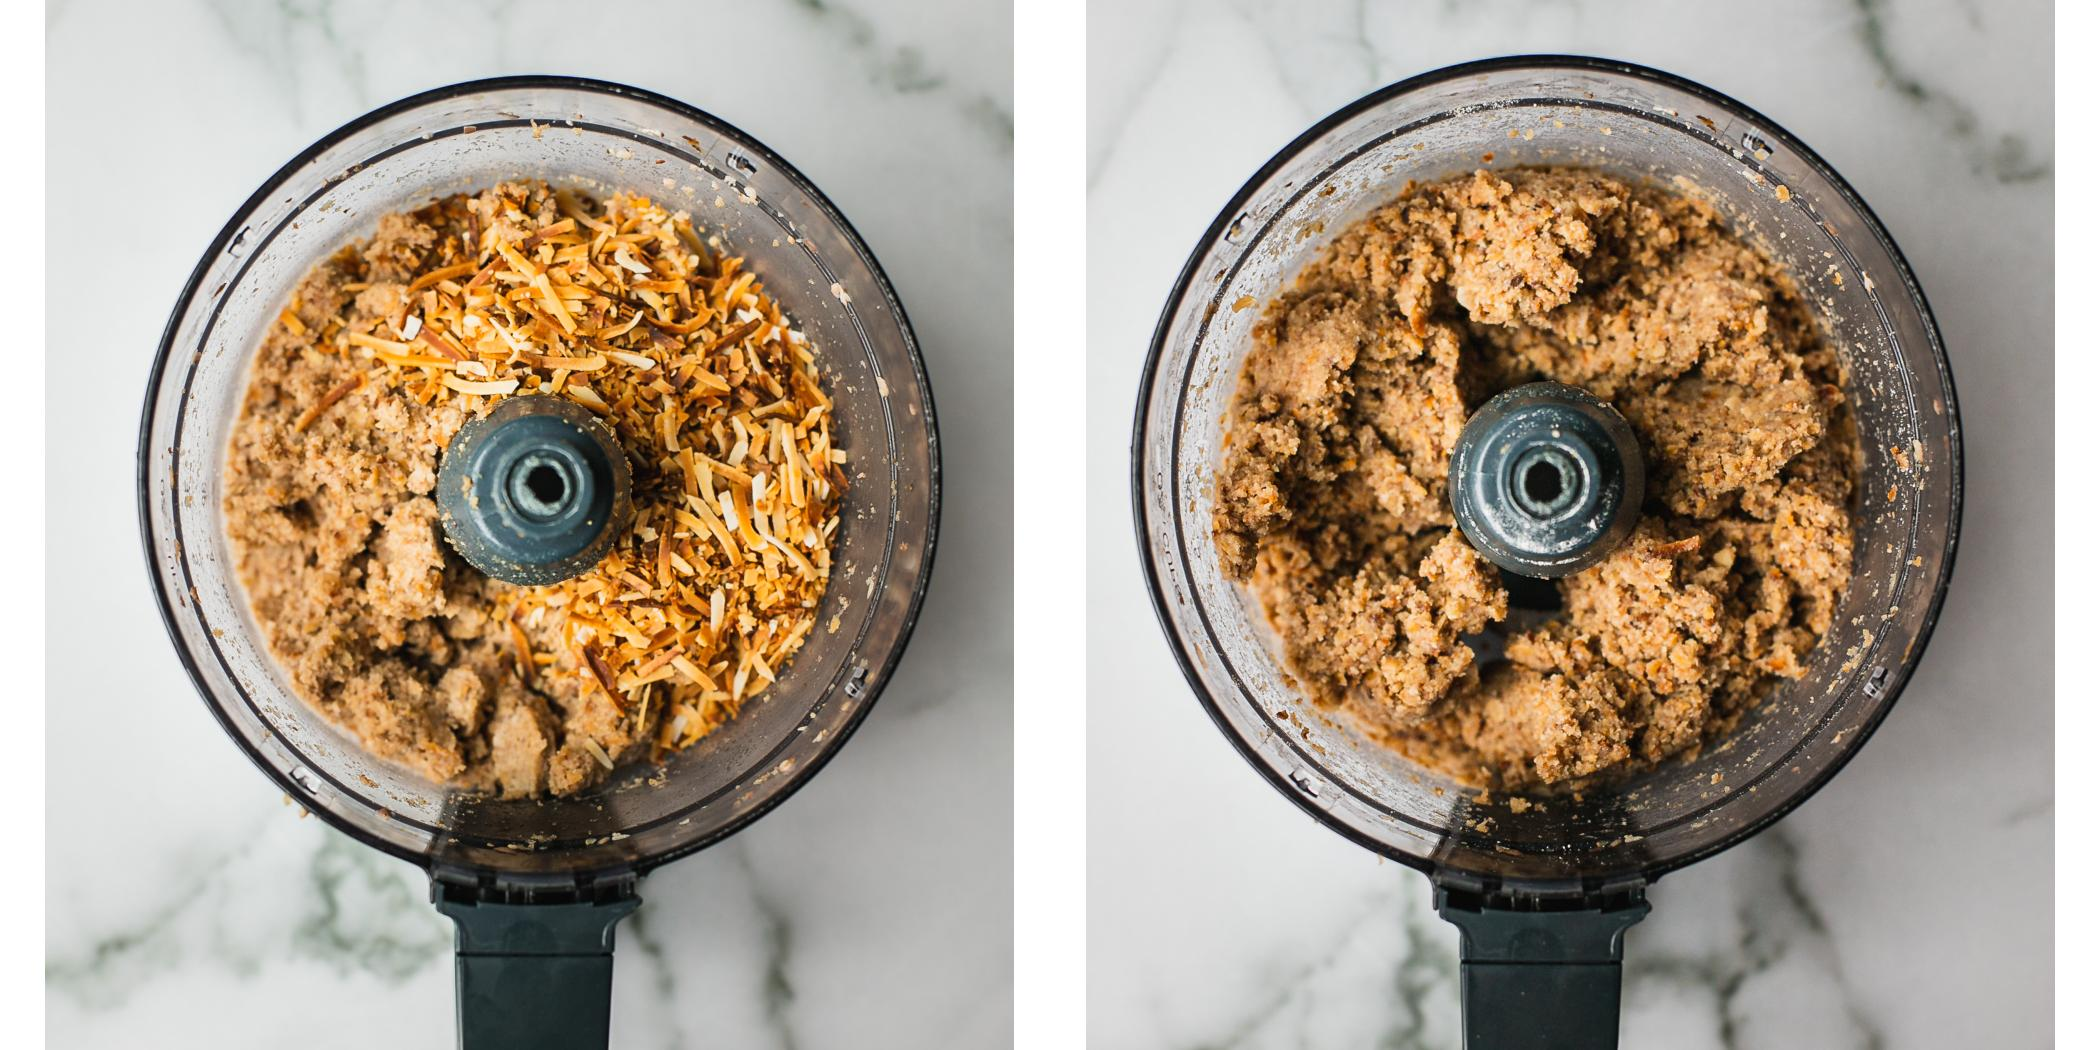 Instructions on how to make samoas cookies in a food processor.